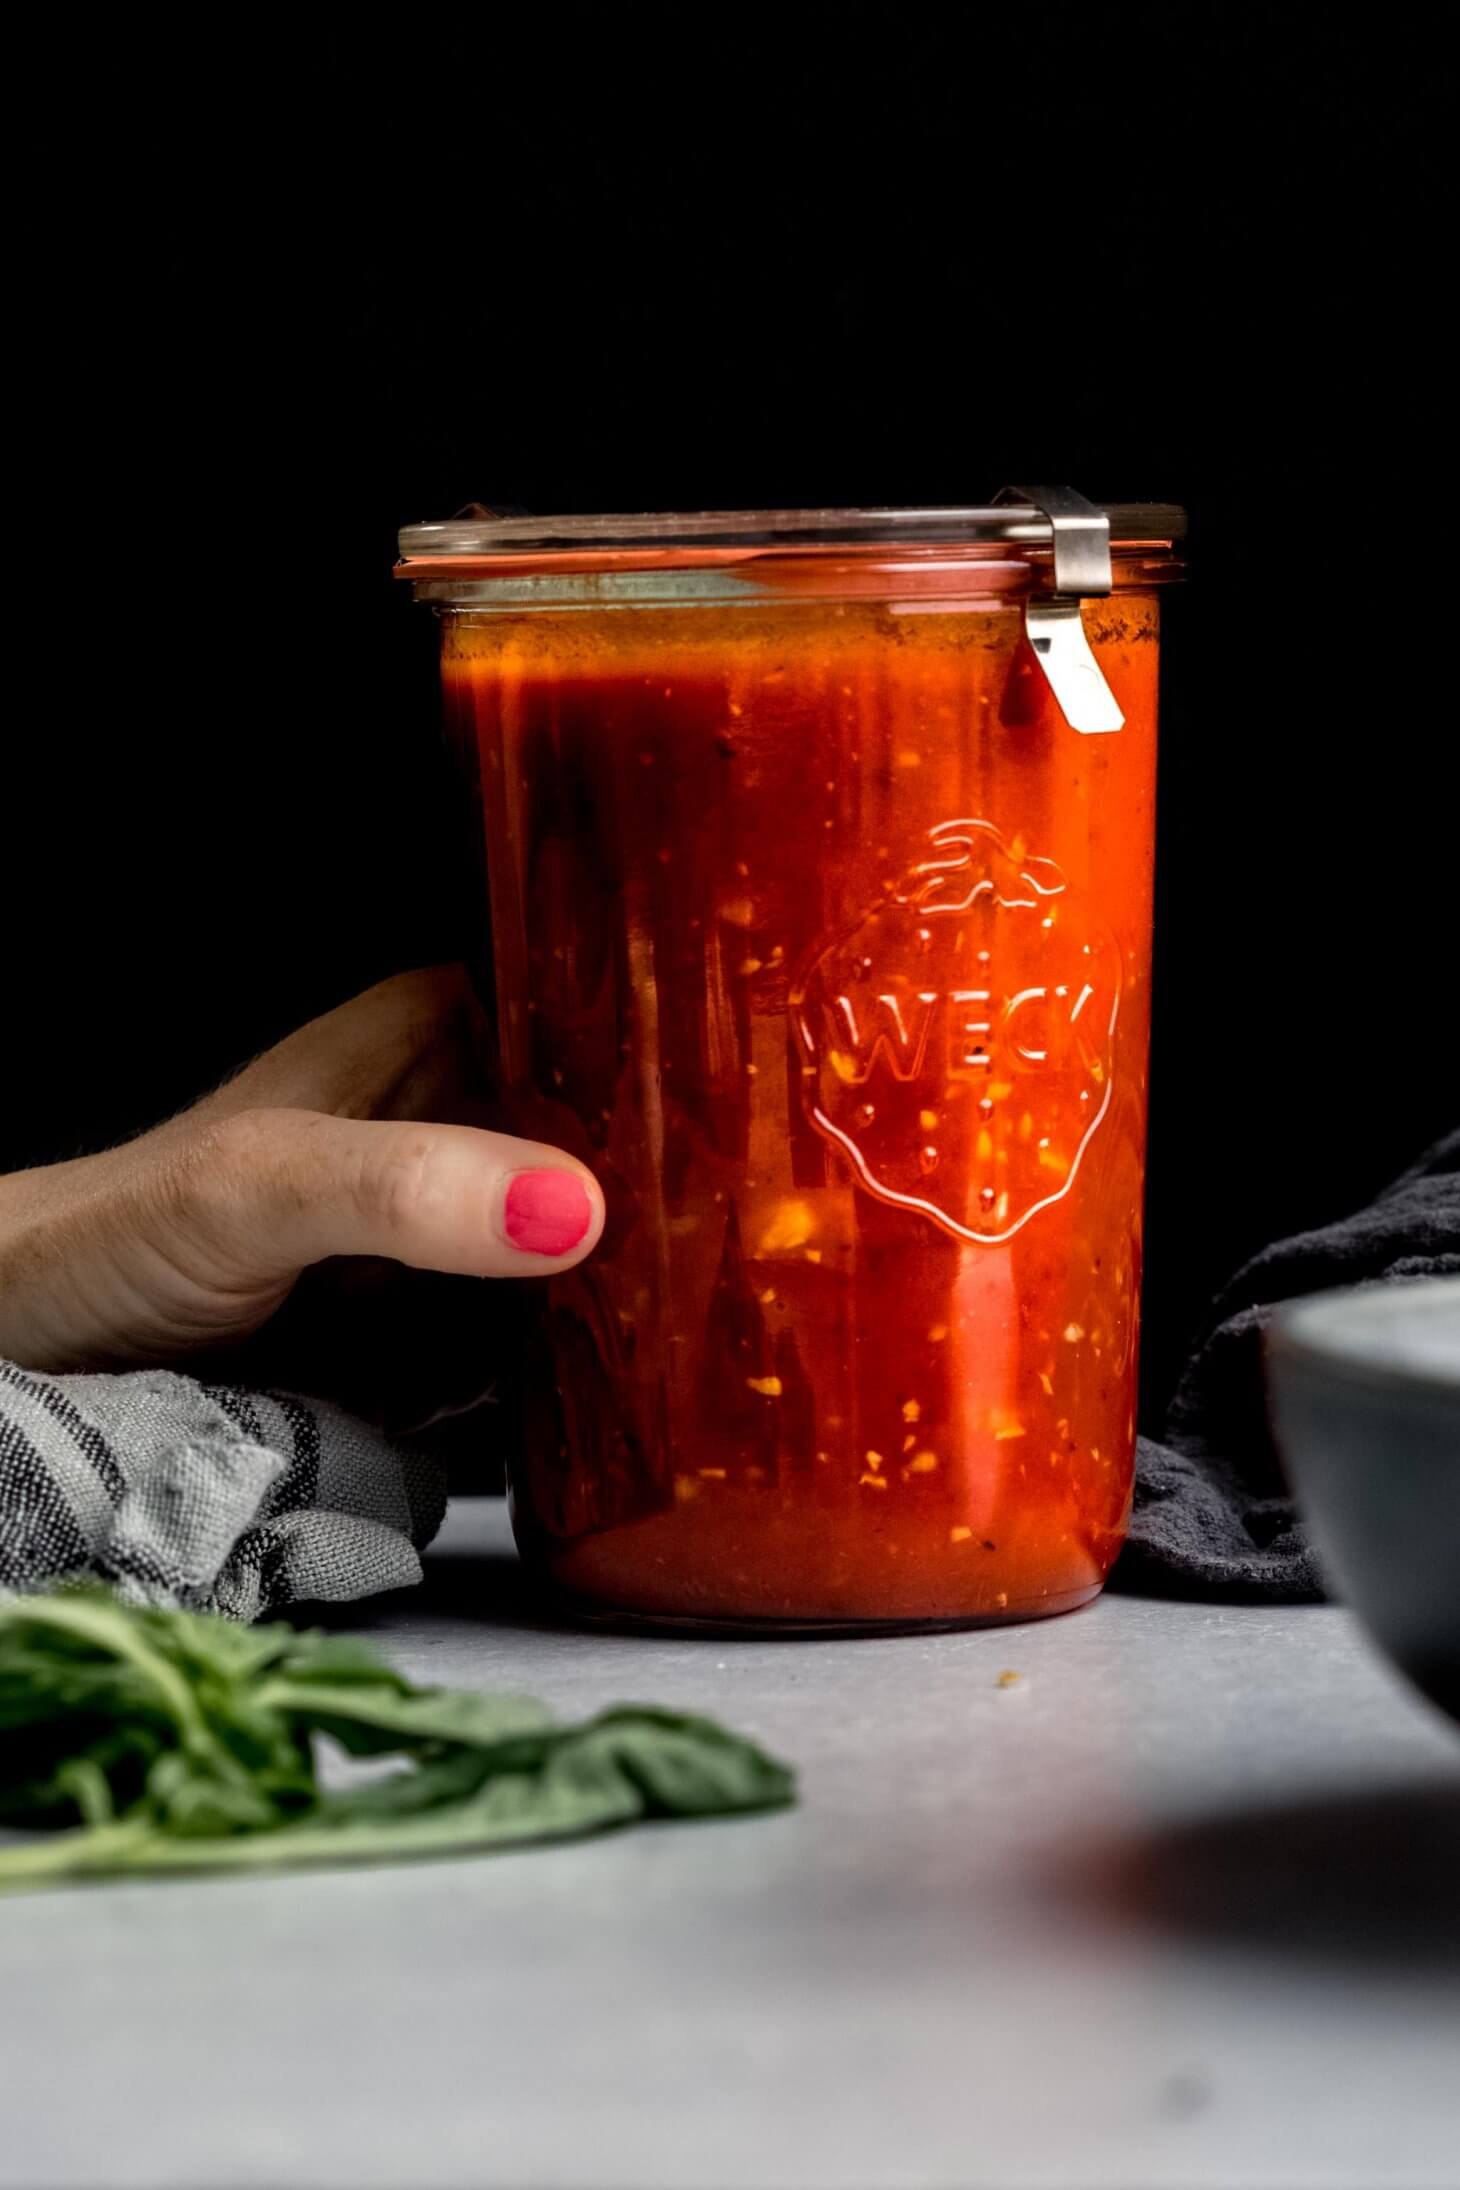 Hand holding jar of homemade marinara sauce.